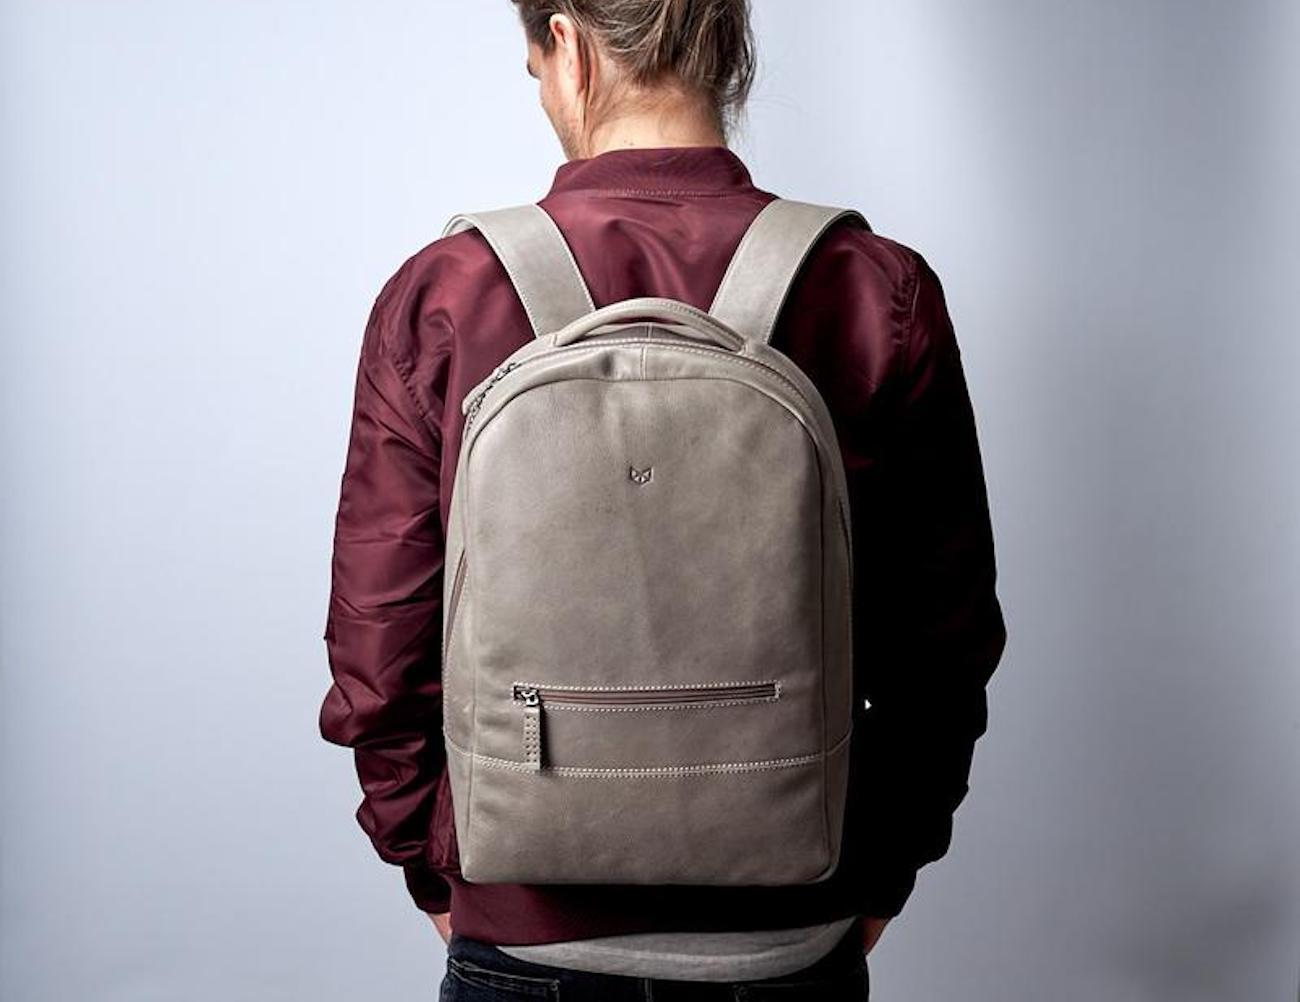 Capra+Leather+Bisonte+Backpack